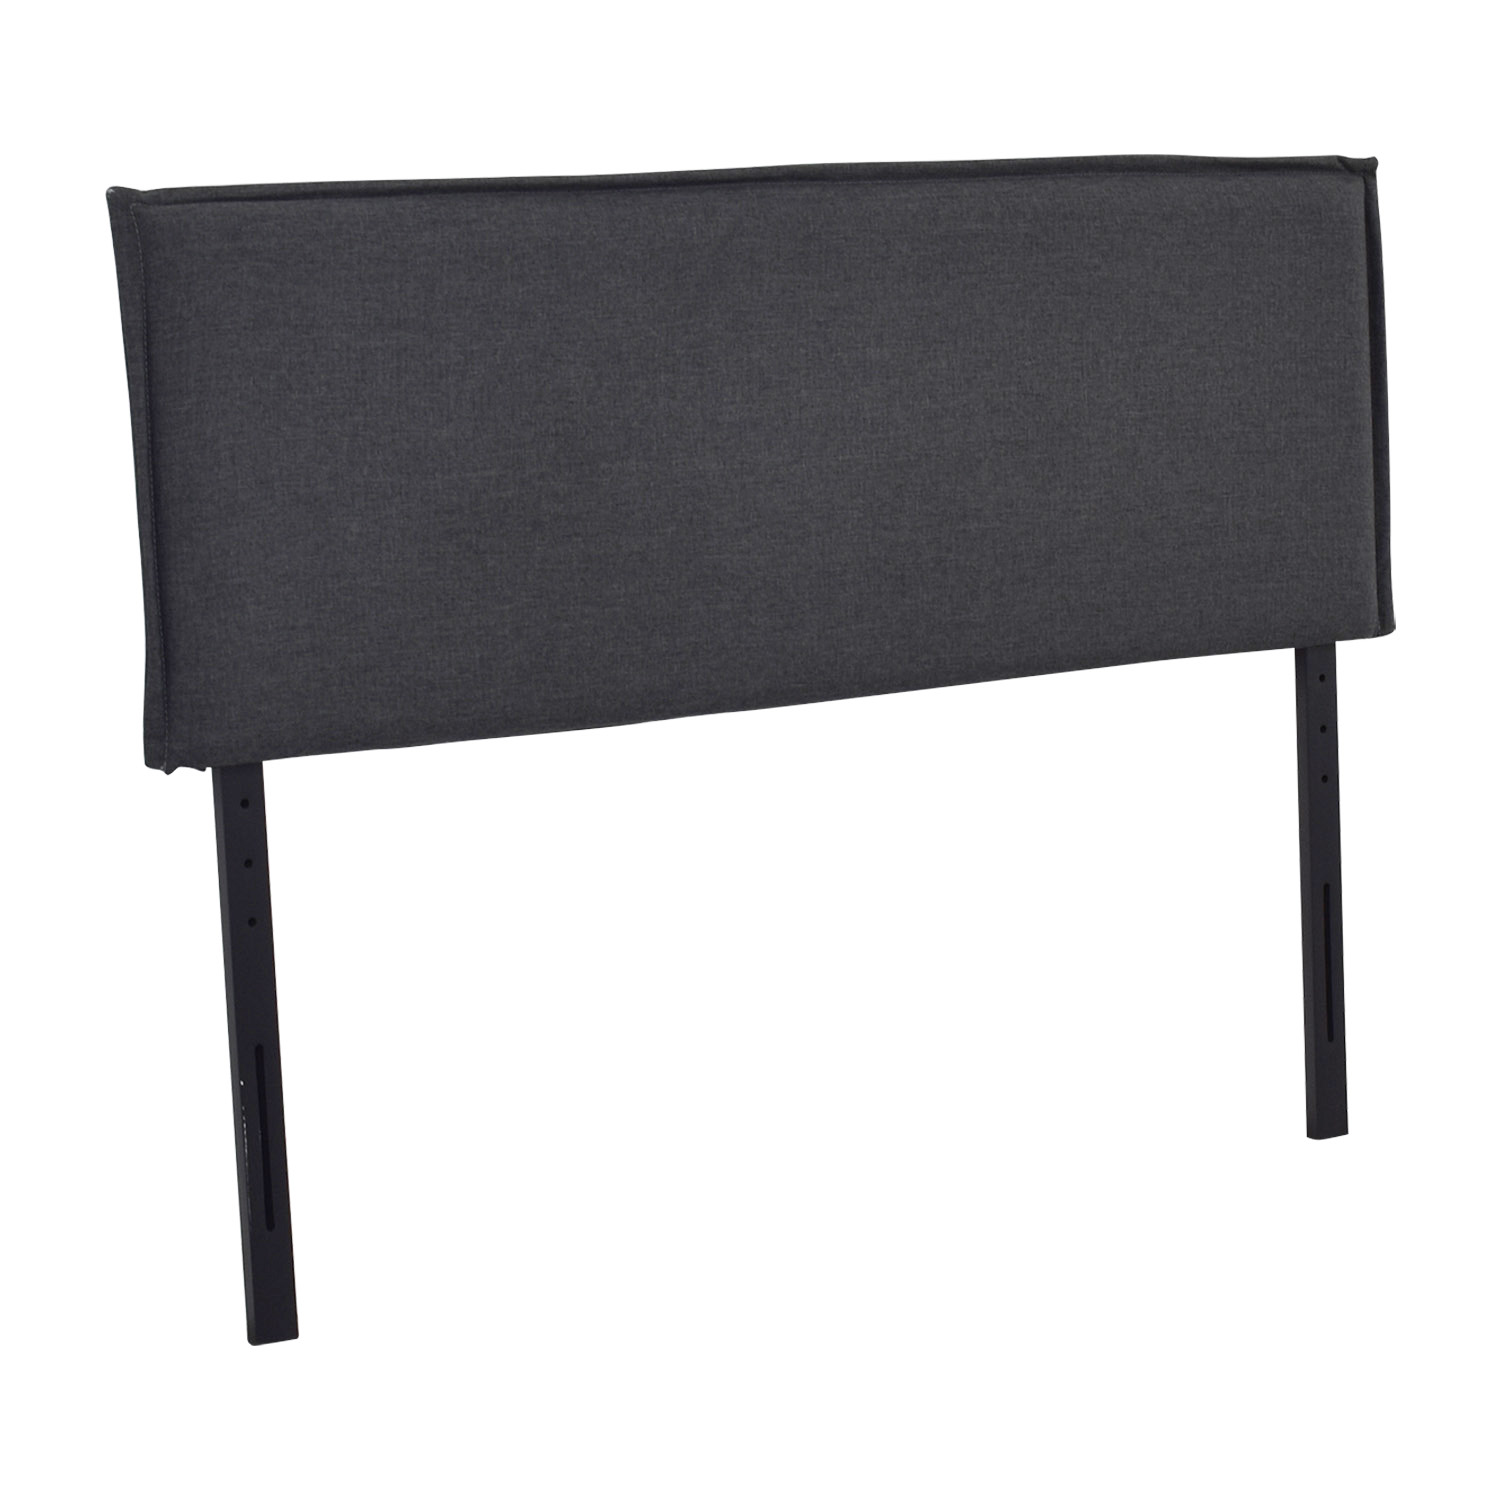 Modway Modway Camille Grey Upholstered Headboard Headboards